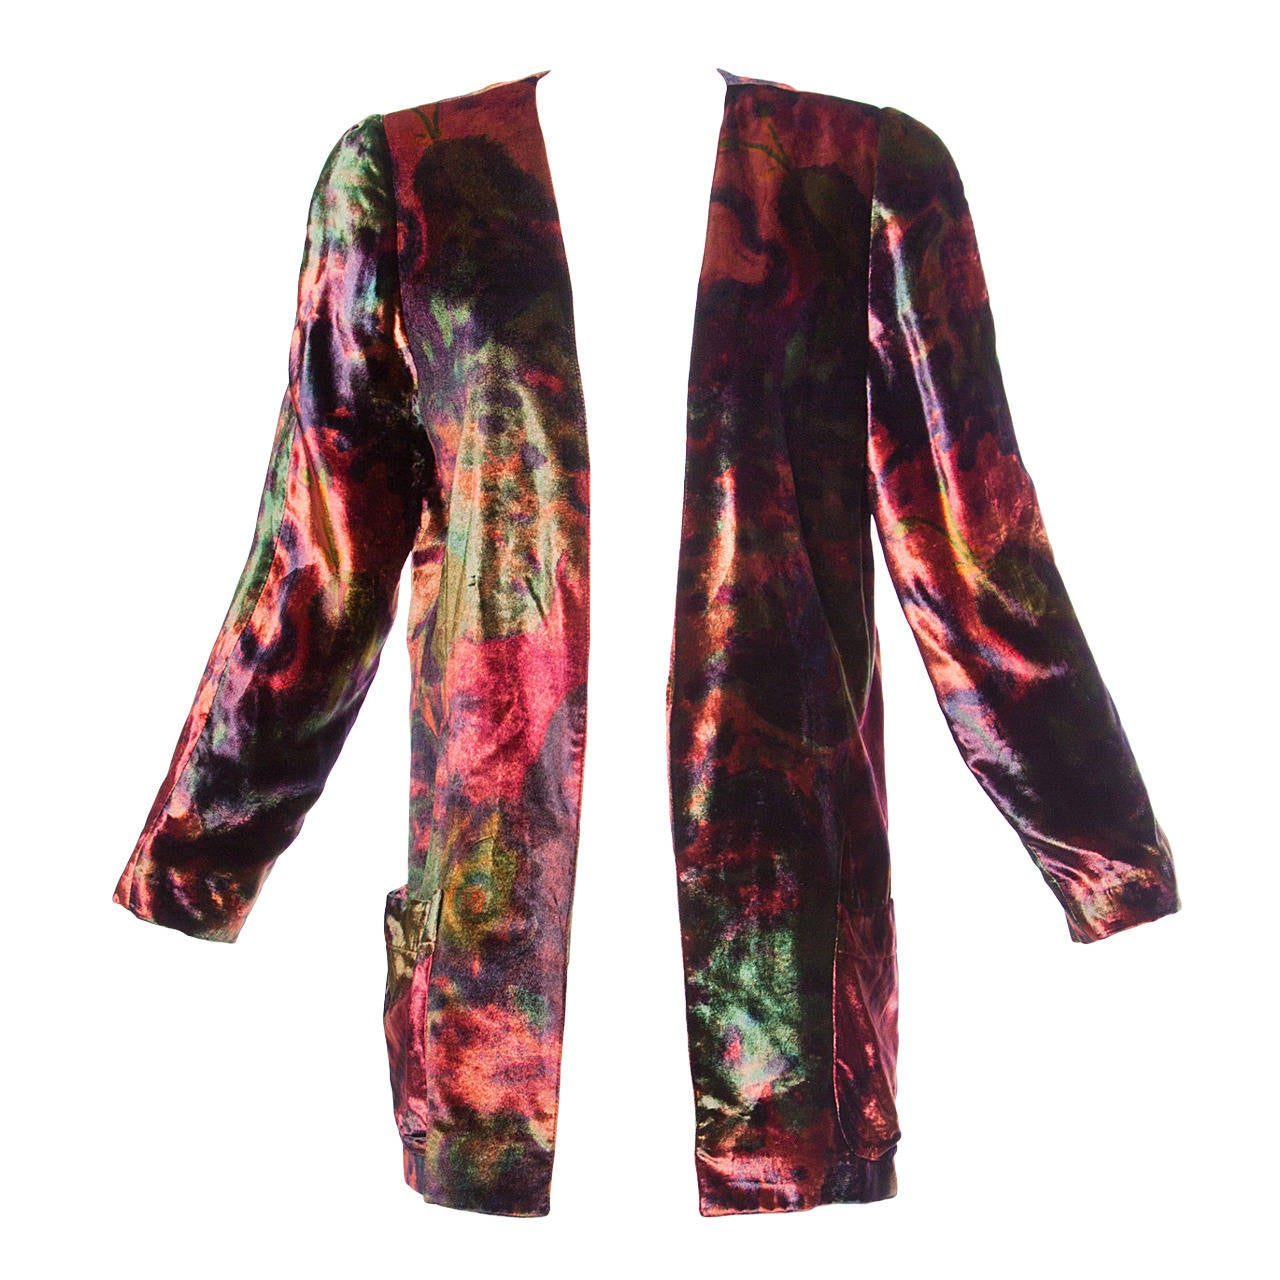 Krizia Vintage Colorful Velvet Cardigan or Jacket at 1stdibs